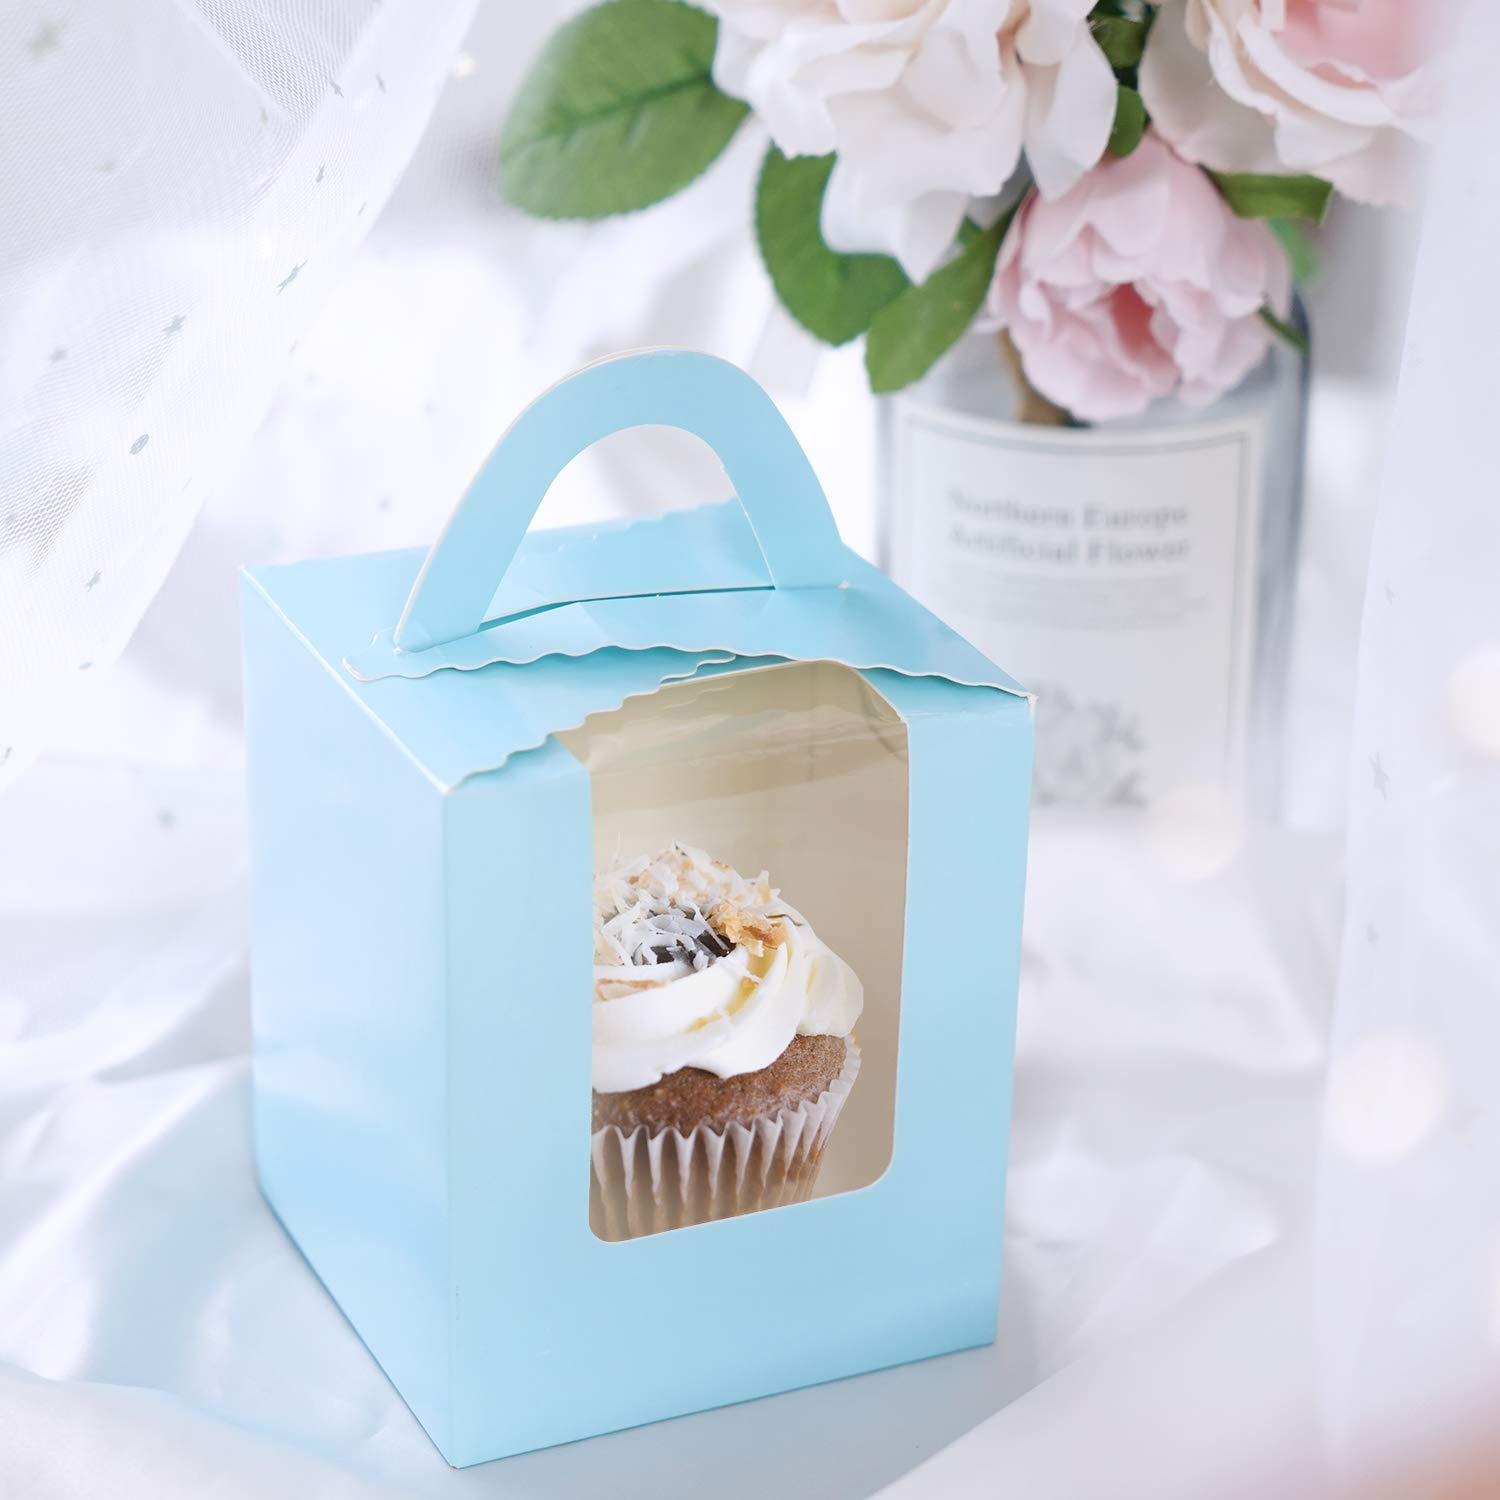 50pcs Single Cupcake Boxes,Eusoar Portable Single Individual Paper Cupcake Holder Containers,Muffin Gift Boxes with Window Inserts Handle for Wedding Birthday Party Candy Boxes Family Treats